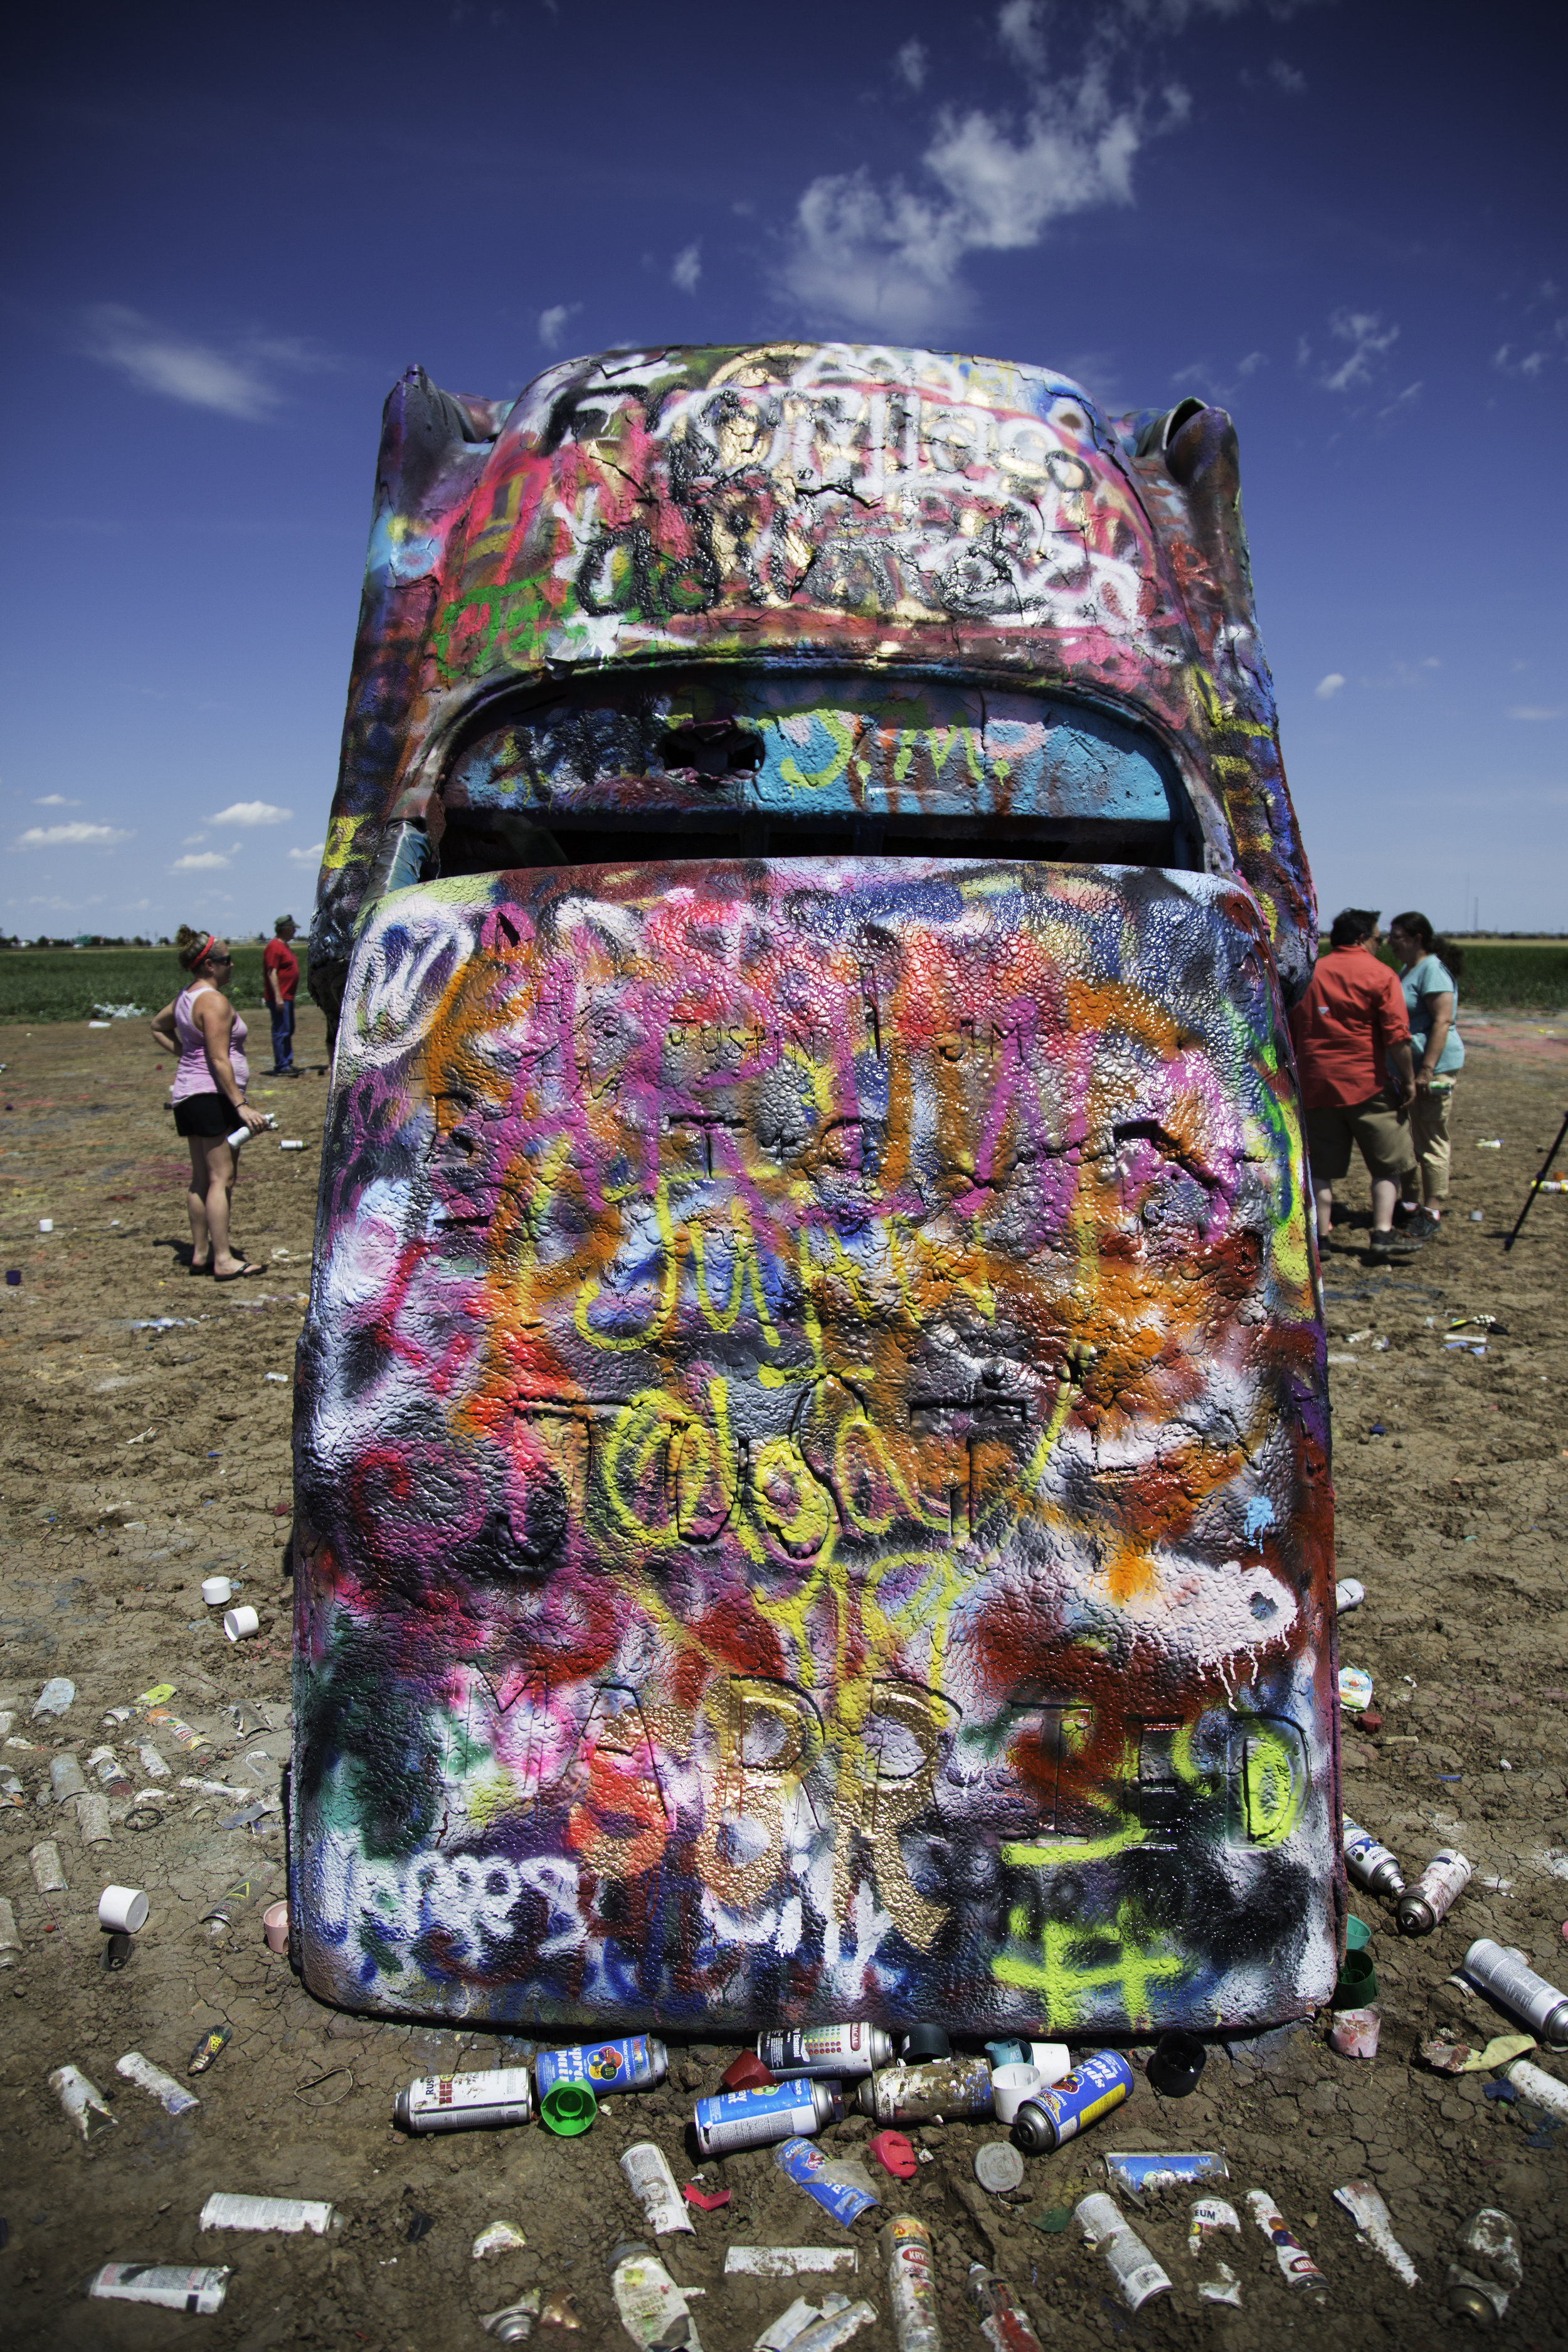 The Cadillac Ranch is visible from the highway, and even though it is technically located on private land, visiting it is highly encouraged. You can access the entrance by driving along a frontage road and entering the pasture by walking through an unlocked gate. The vehicles are wildly decorated and spray painted differently by hundreds of different people every single day.